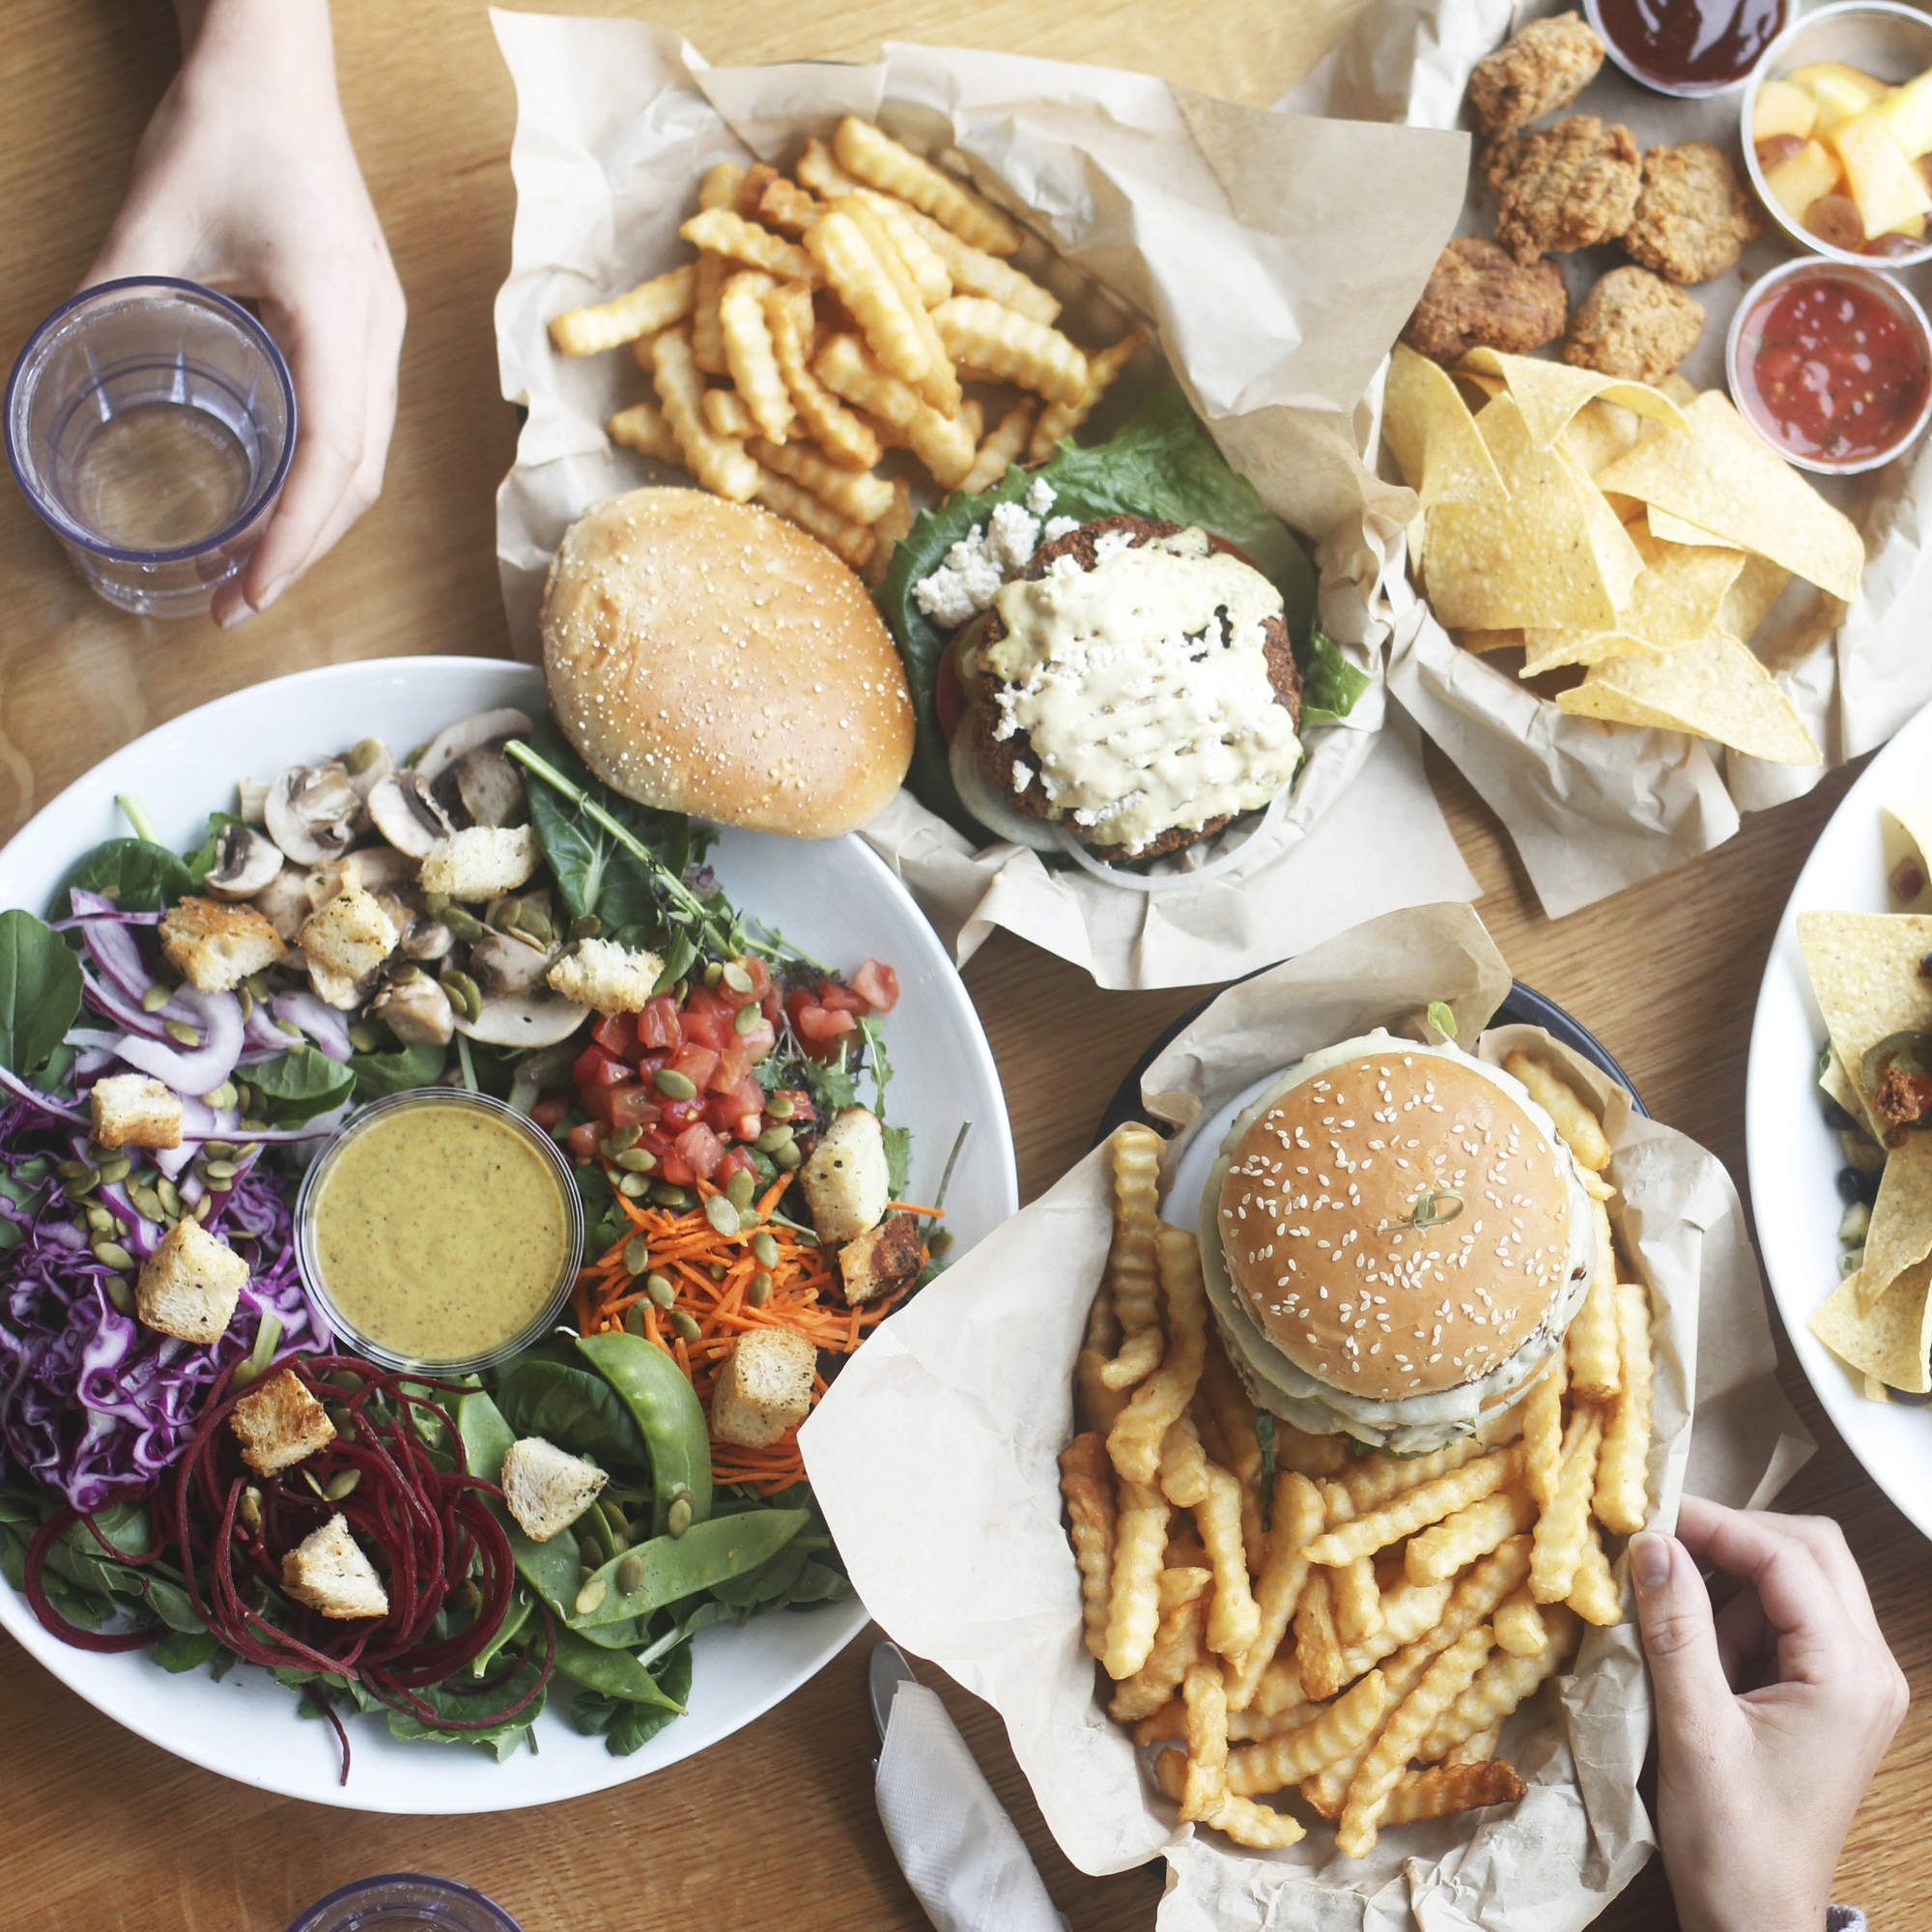 21 Best Vegetarian Restaurants Thrillist Https Www Thrillist Com Eat Nation 21 Best Vegeta Best Vegetarian Restaurants Veggie Restaurant Vegan Restaurants